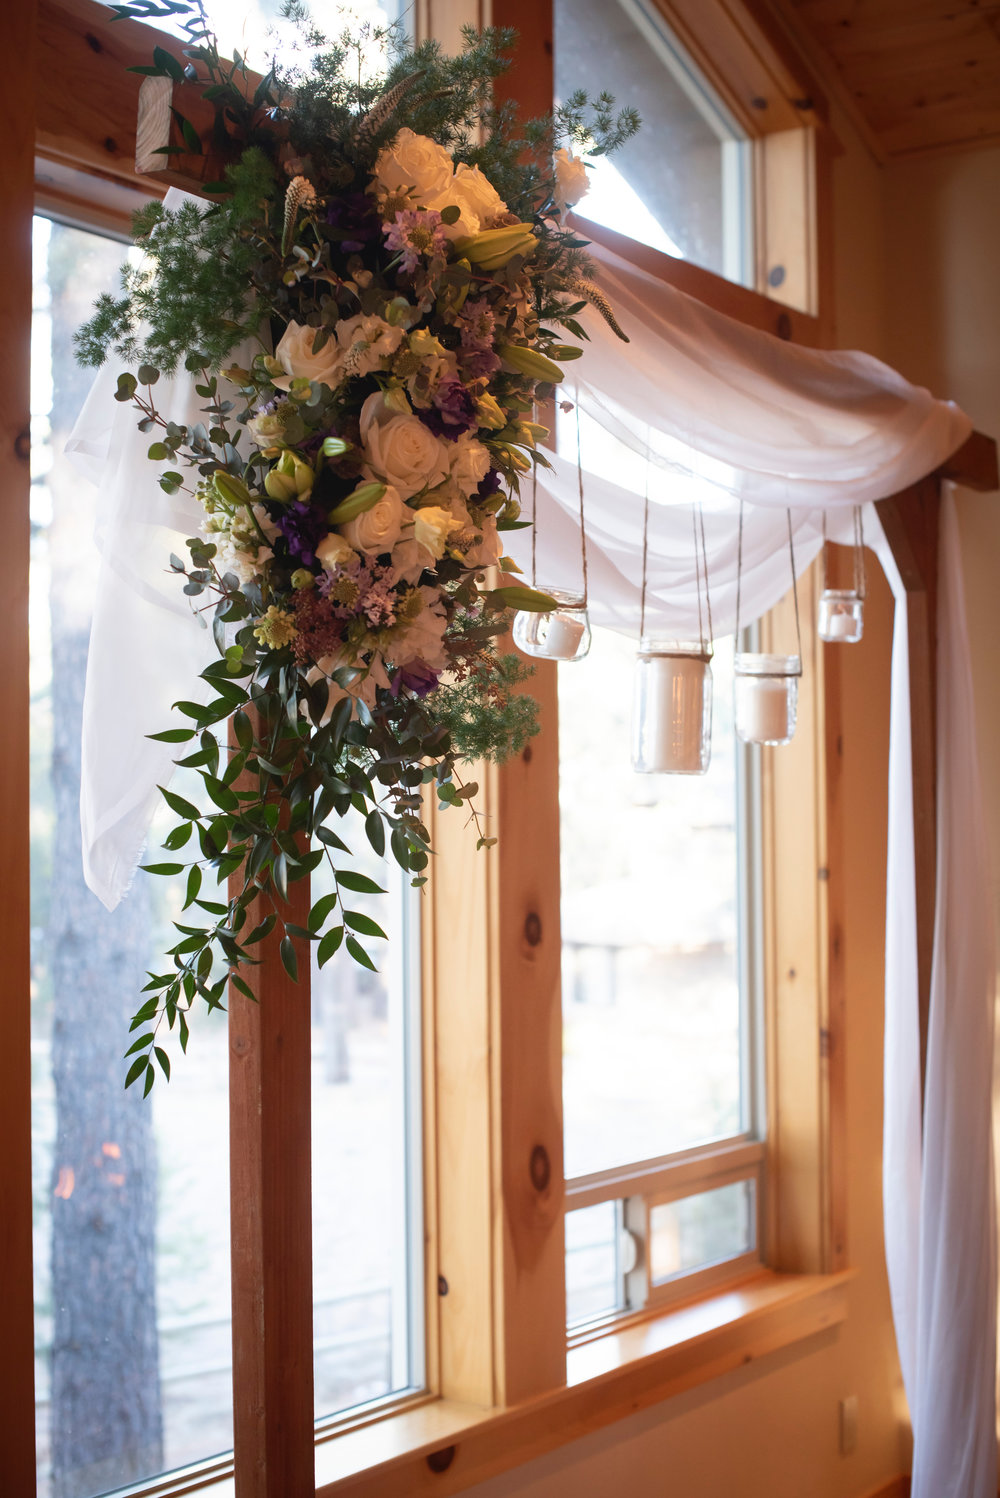 Custom Arbor Arrangements and creations by Bend Floral Artistry. Sunriver Oregon private residence. Photo by:  WildTeacup.com  Jennifer Whelan